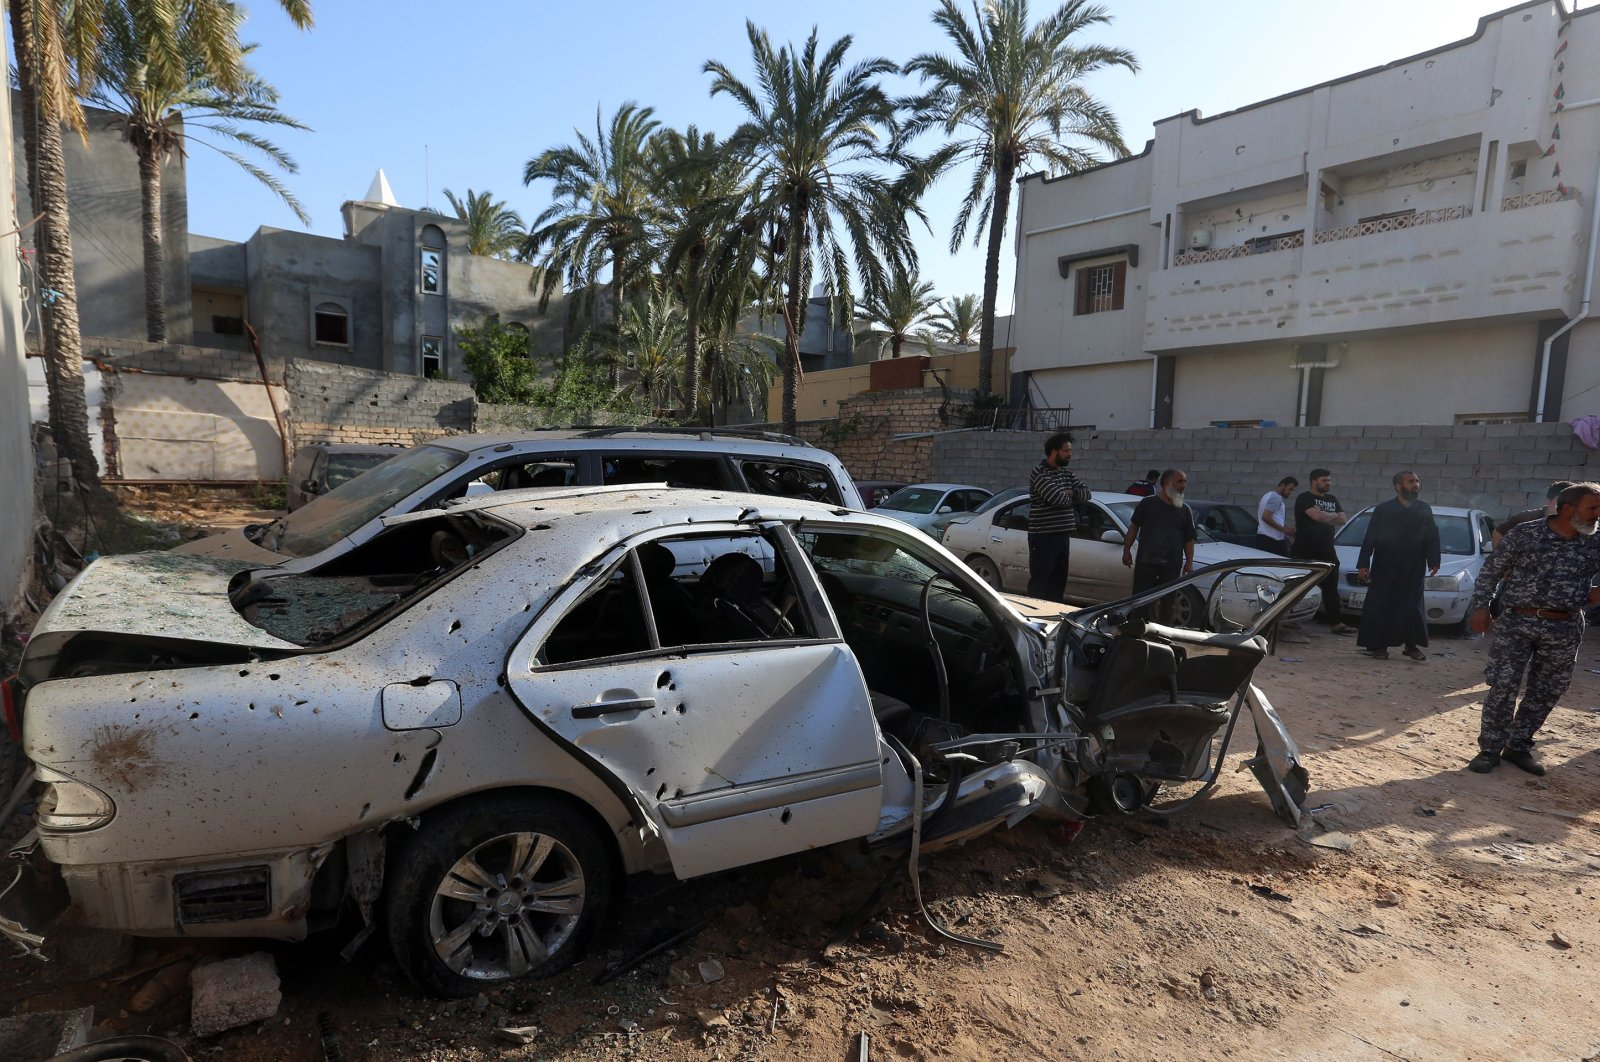 Libyans check the site of shelling on the residential area of souq al-Gomaa, north of the Libyan capital Tripoli, on April 17, 2020. (AFP)